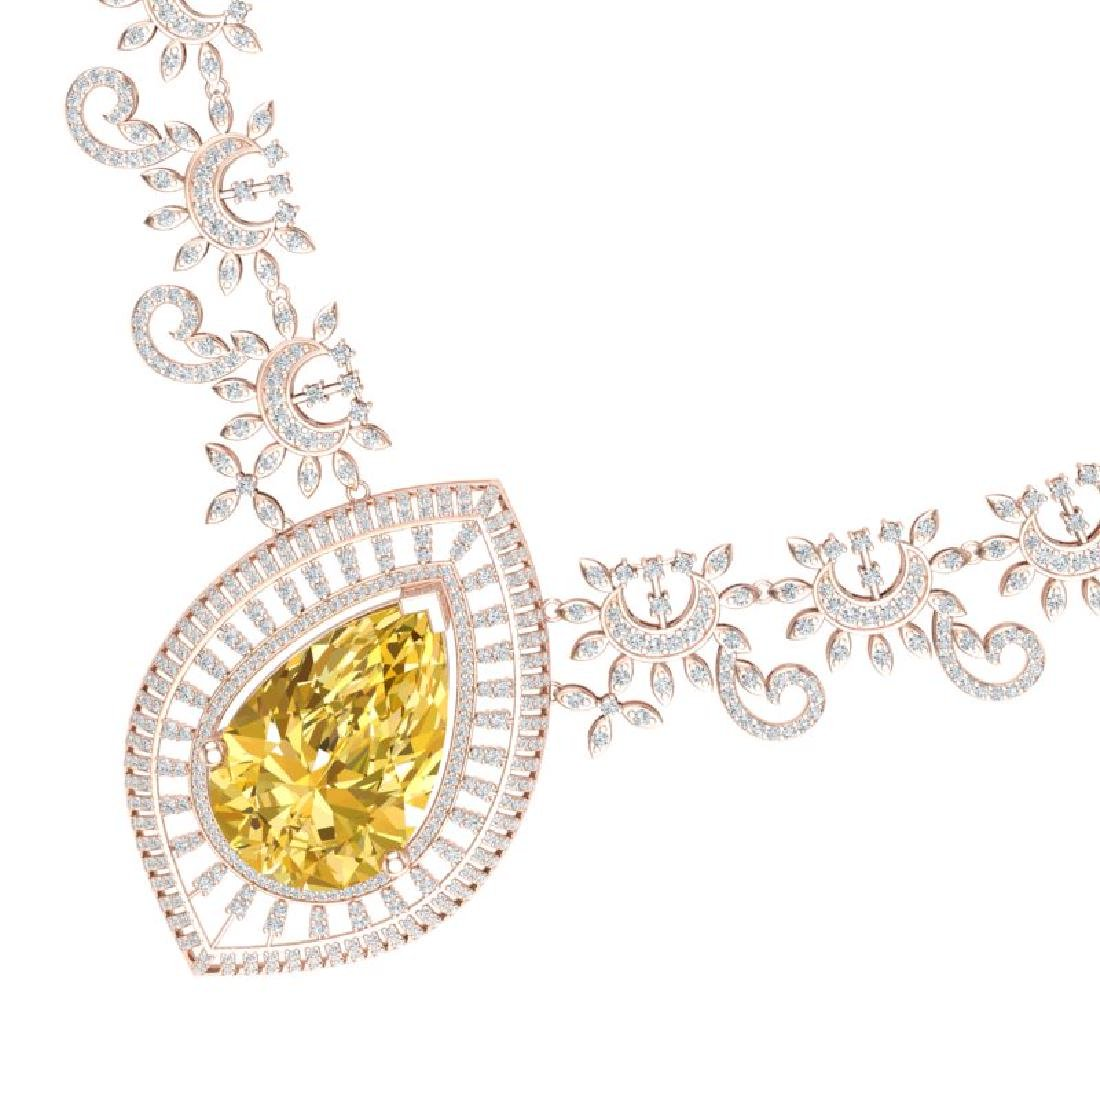 53.17 CTW Royalty Canary Citrine & VS Diamond Necklace